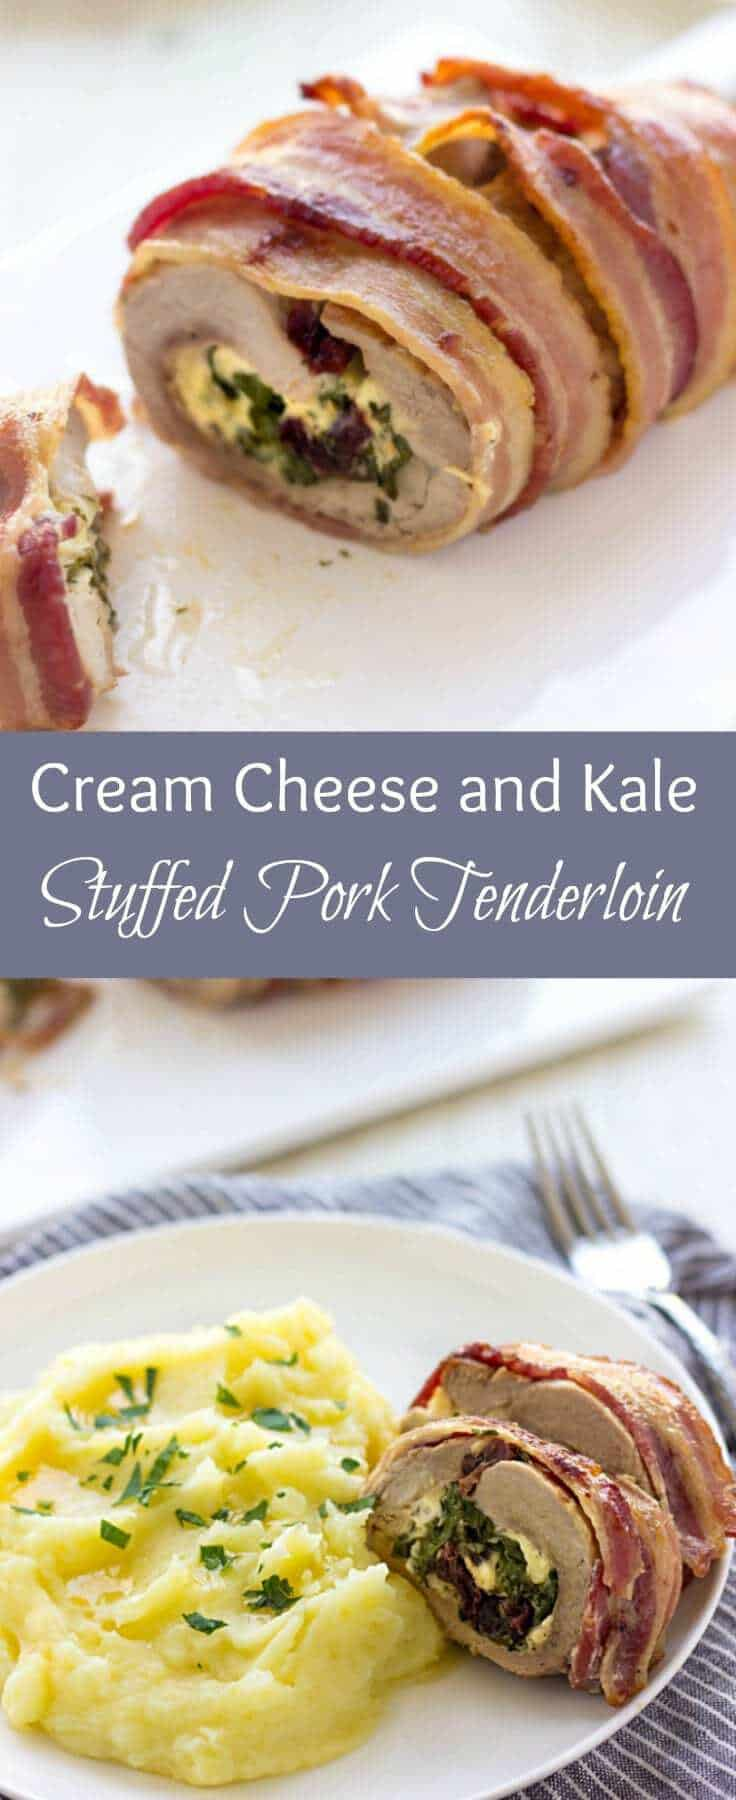 Stuffed Pork Tenderloin | Cream Cheese Stuffed Pork Tenderloin | Baked Pork Tenderloin | Bacon Wrapped Pork Tenderloin